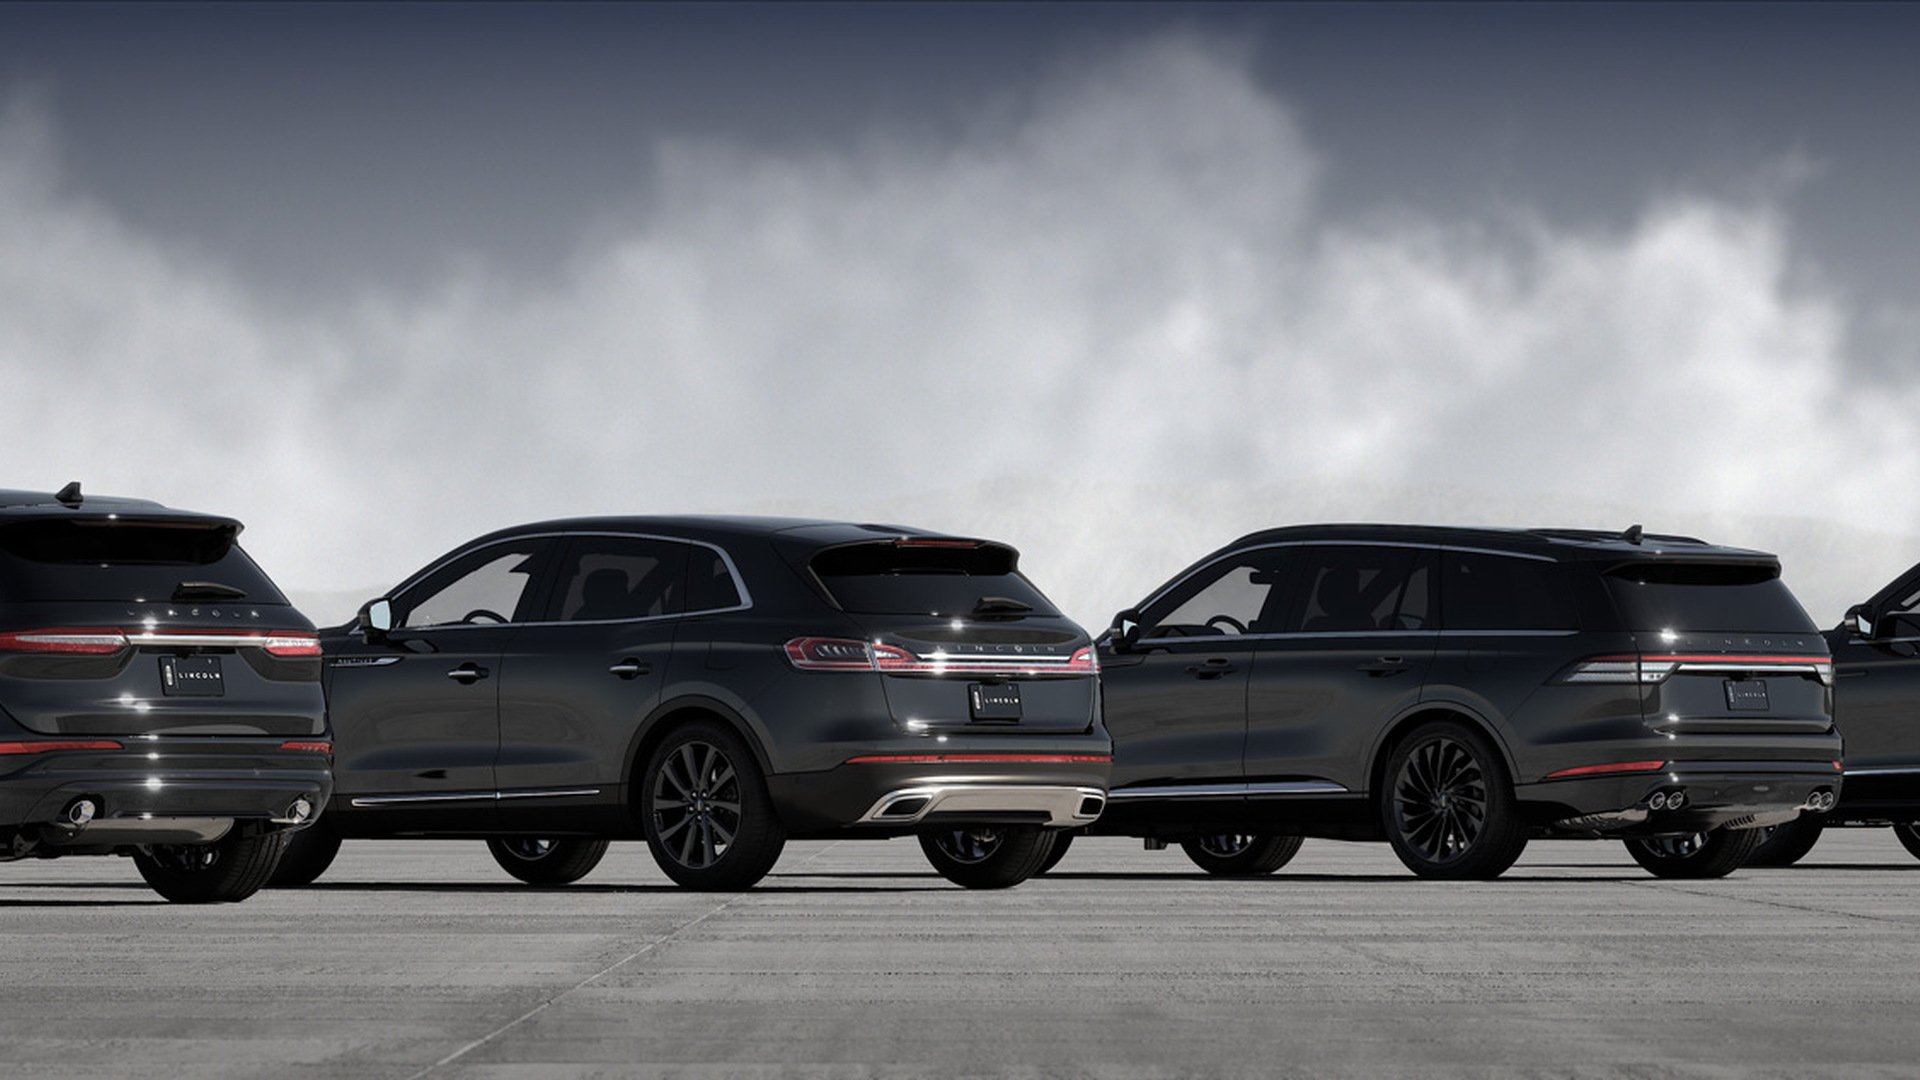 Lincoln SUV lineup with Monochromatic Package